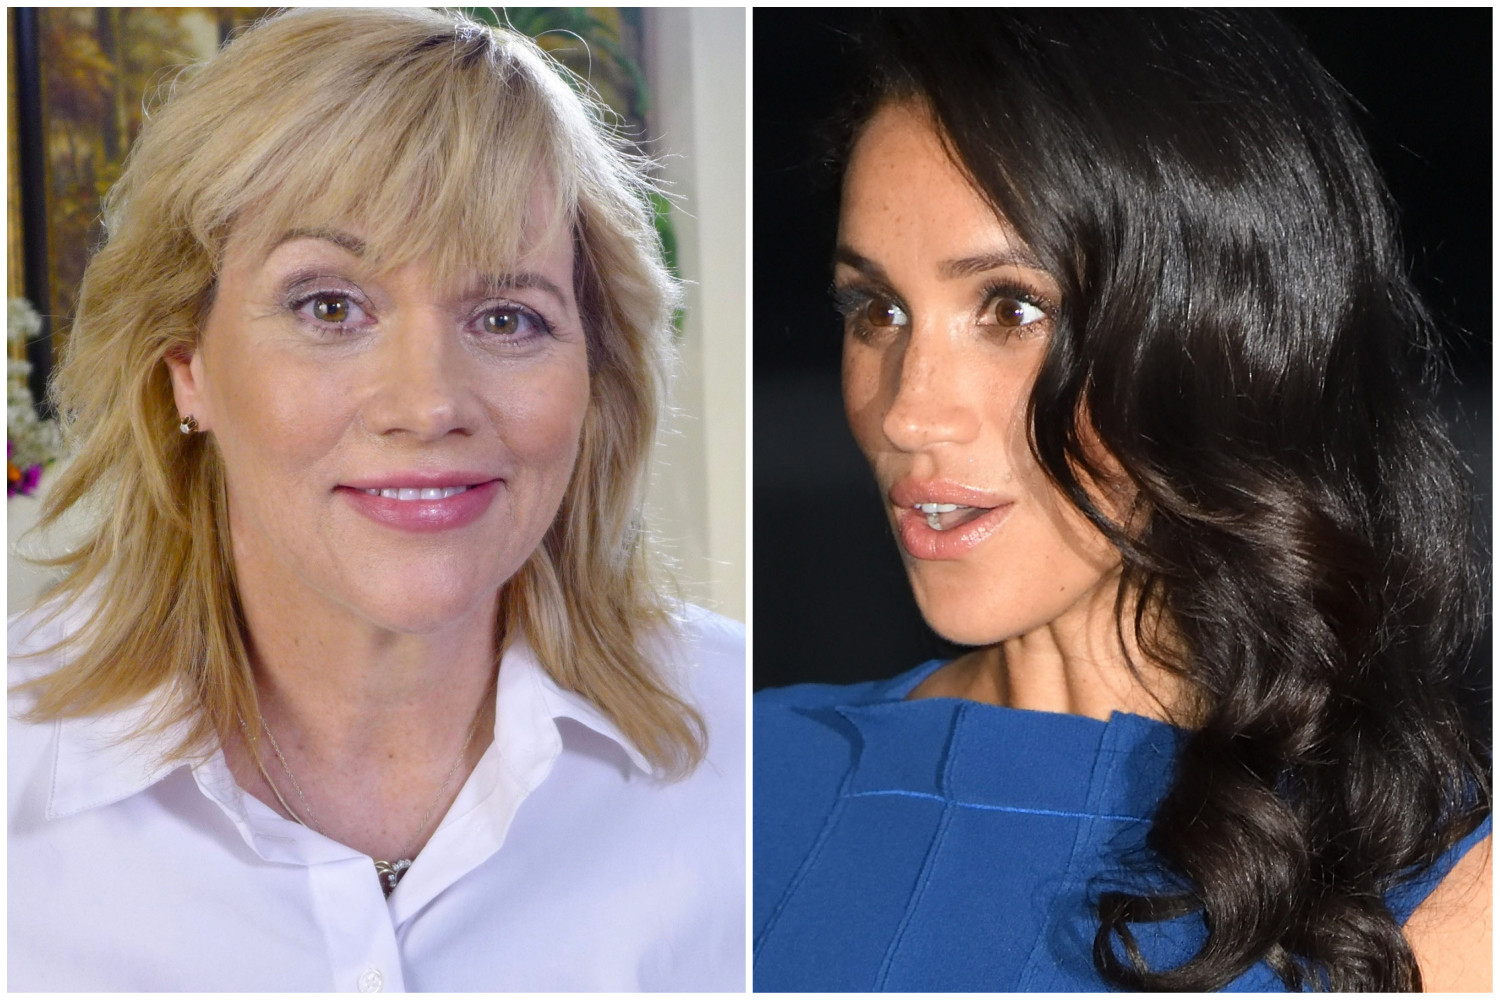 Samantha Markle says Meghan is 'turning her back on family' in Christmas card